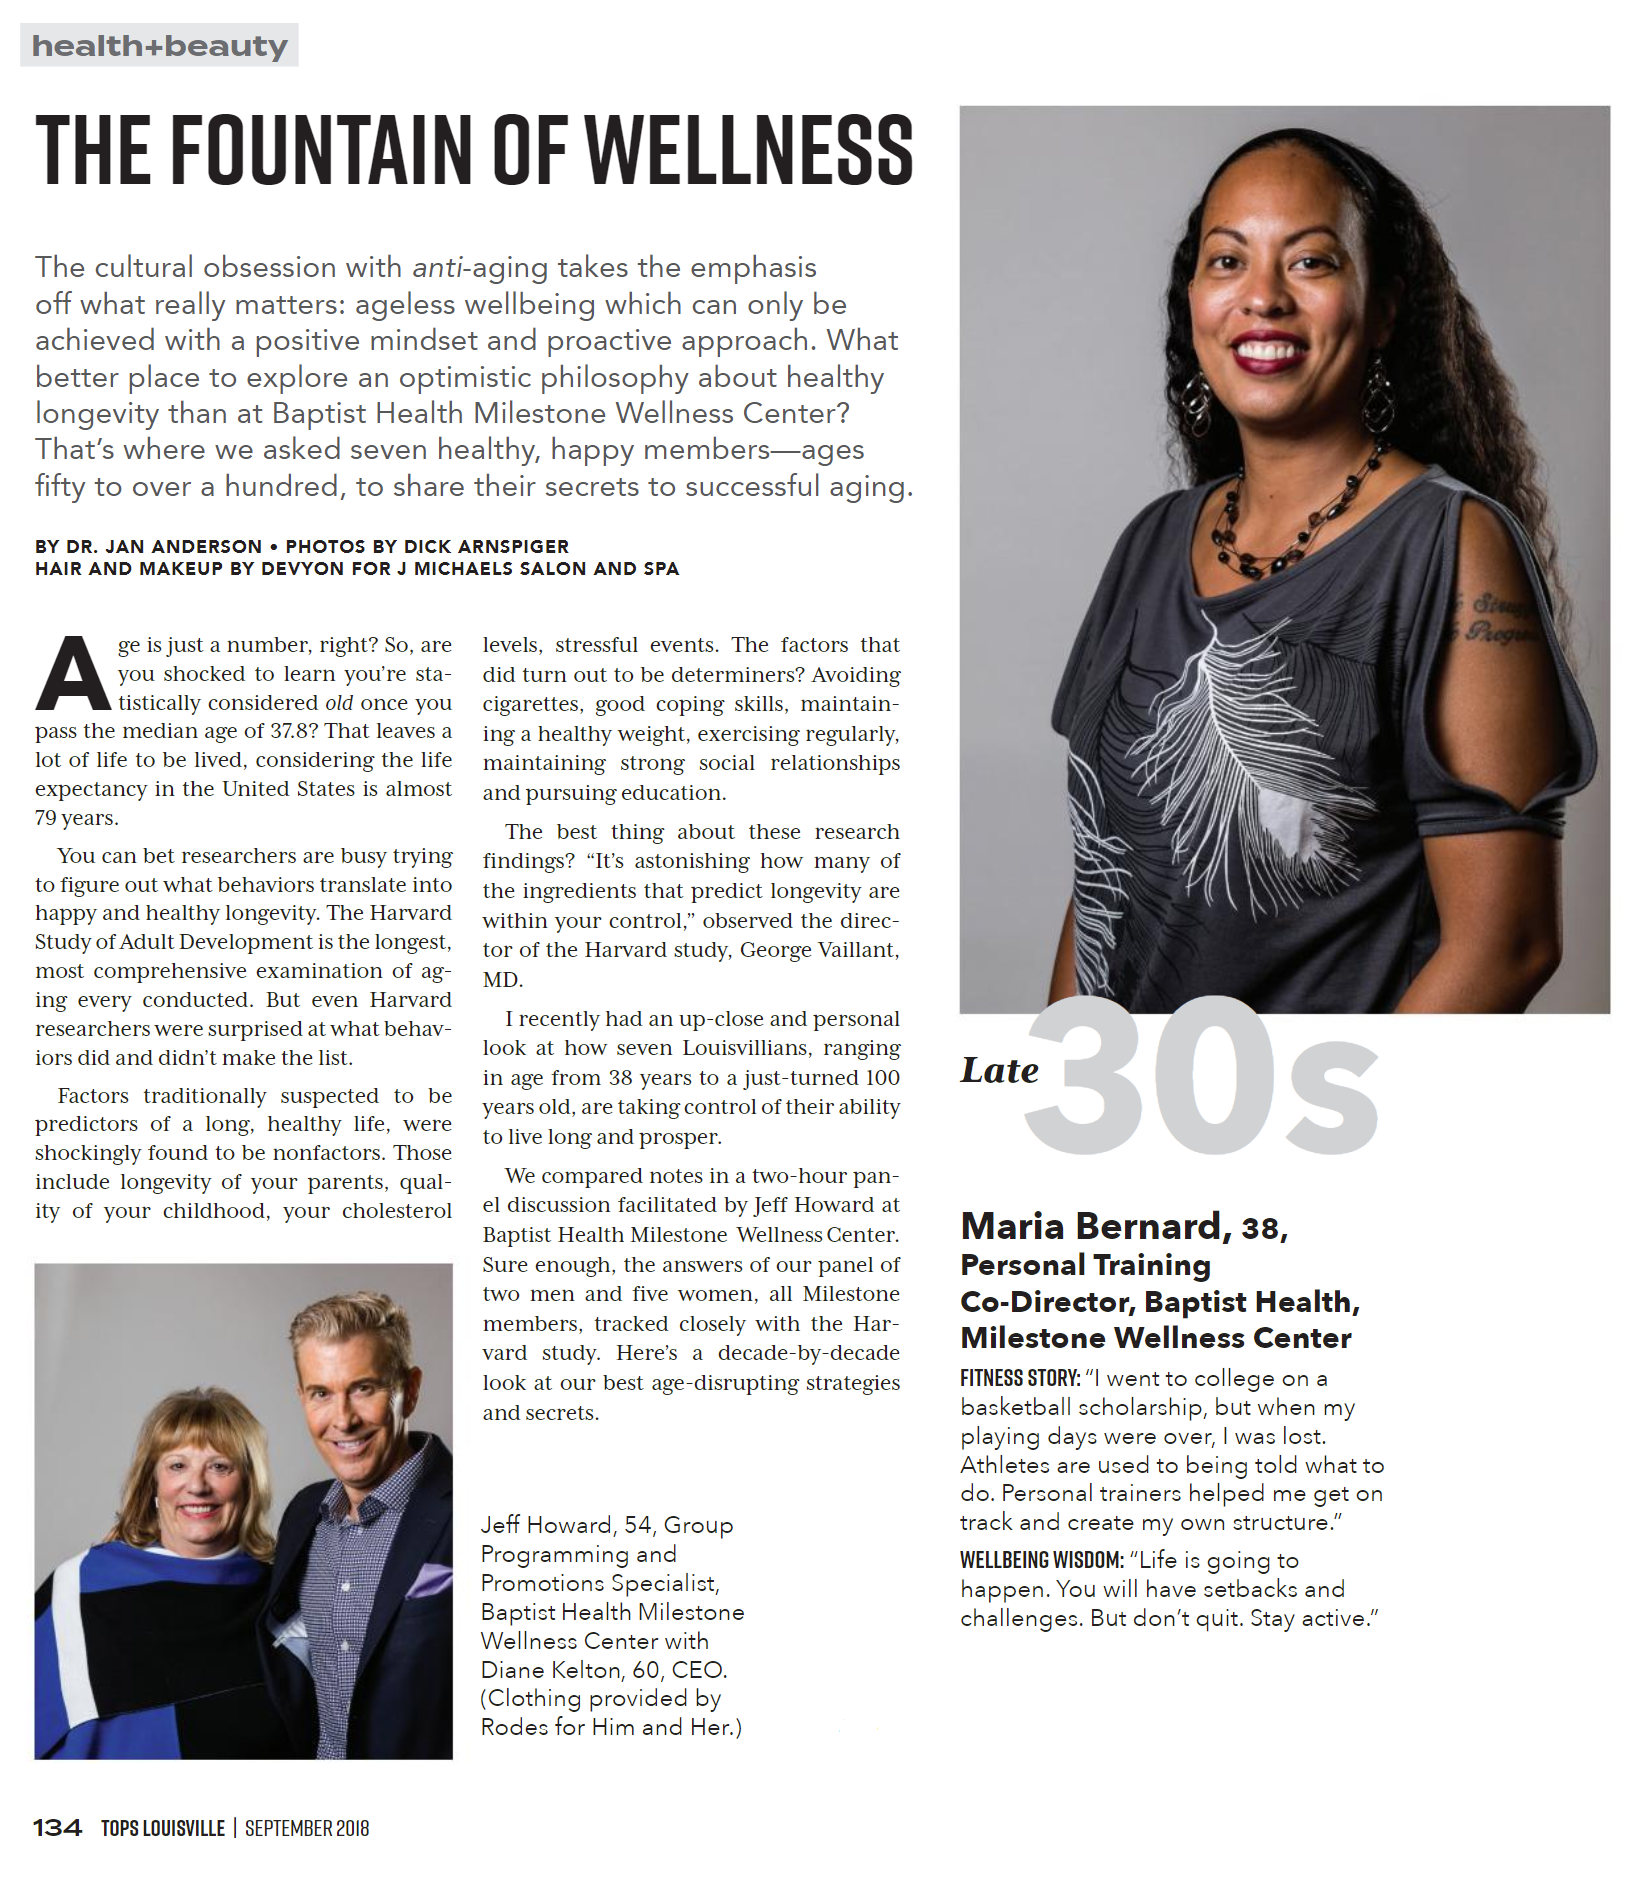 Fountain of Wellness